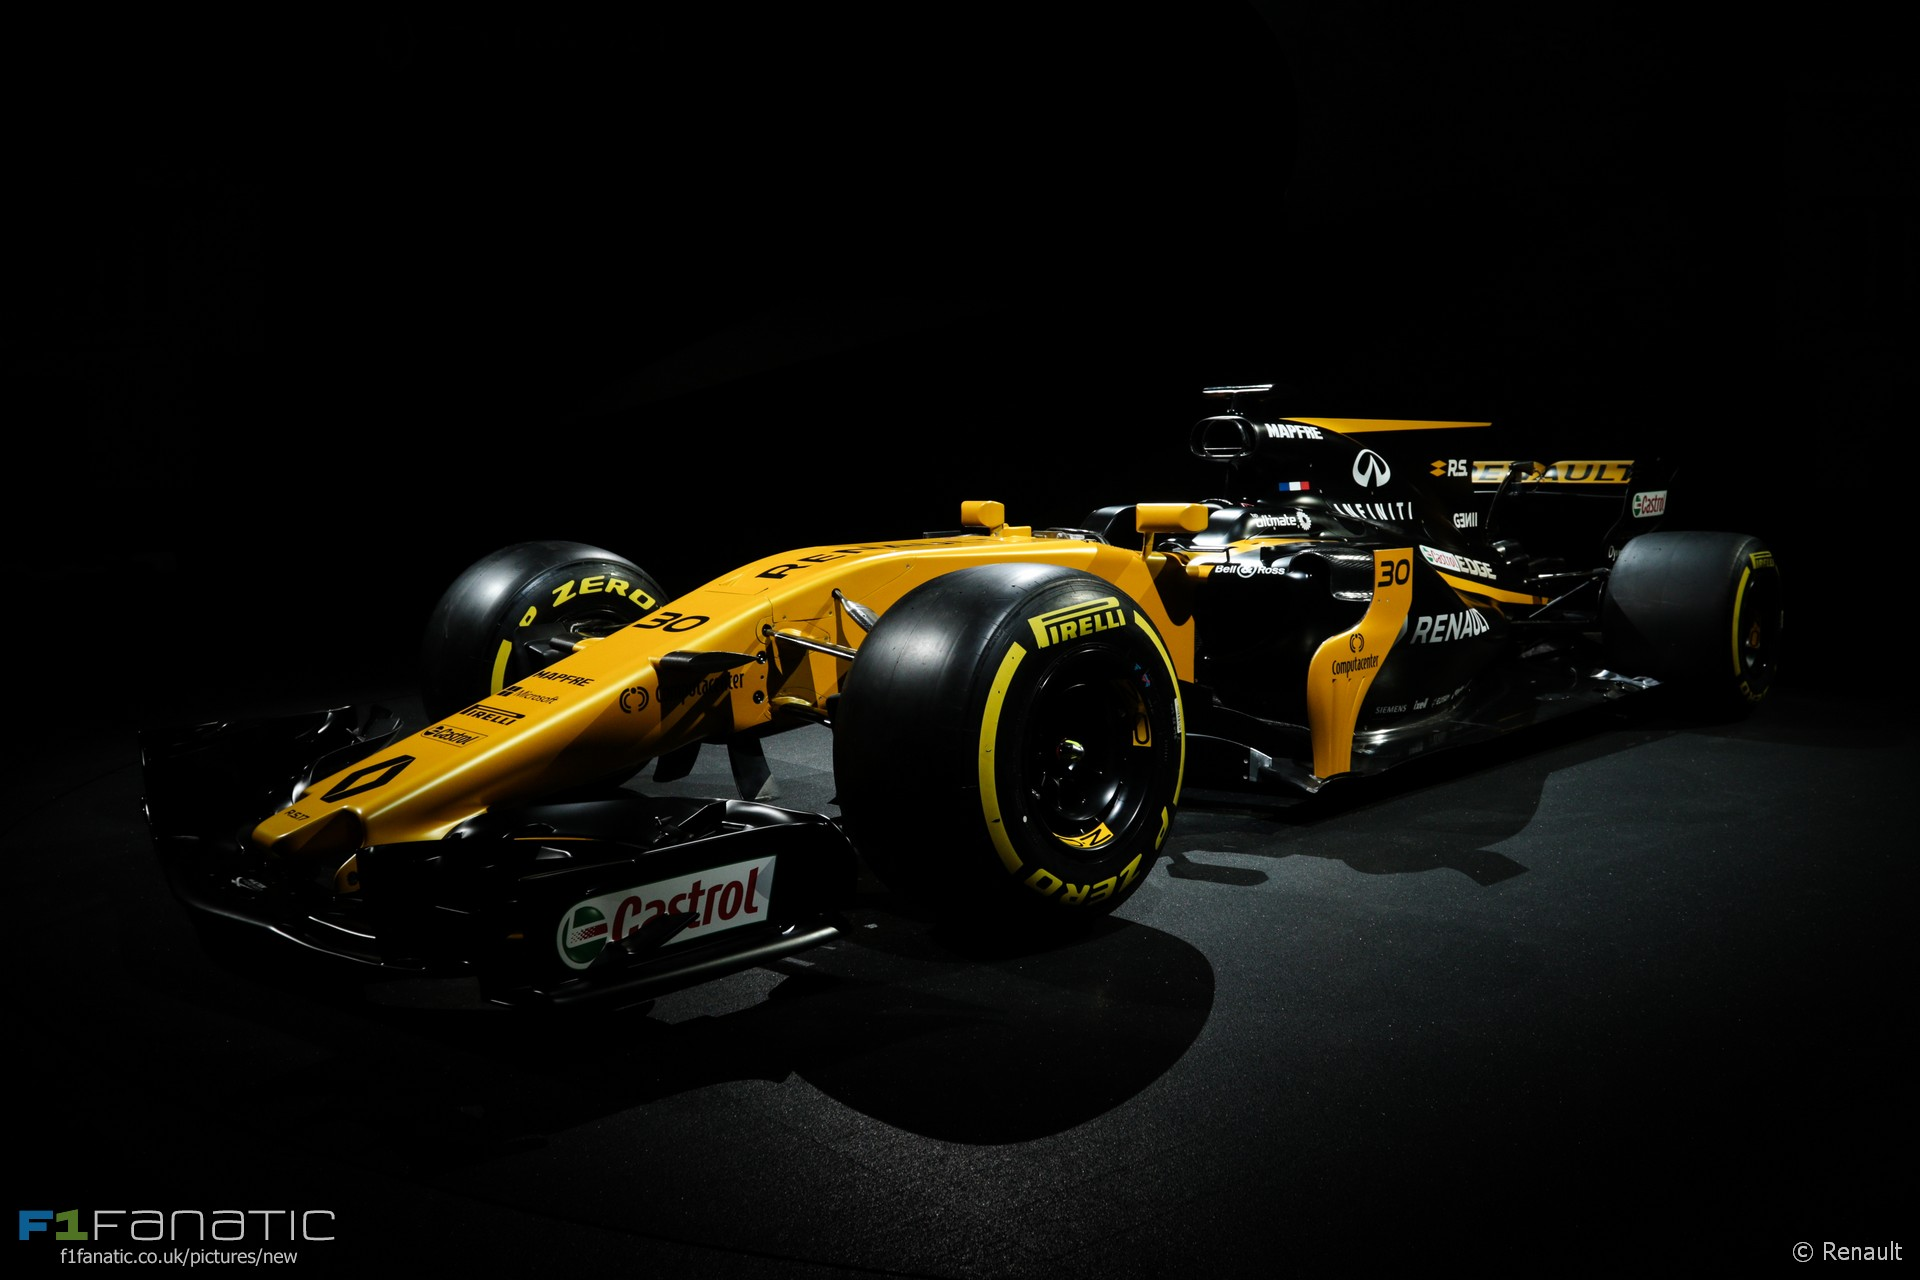 renault rs17 2017 formula one car pictures f1 fanatic. Black Bedroom Furniture Sets. Home Design Ideas